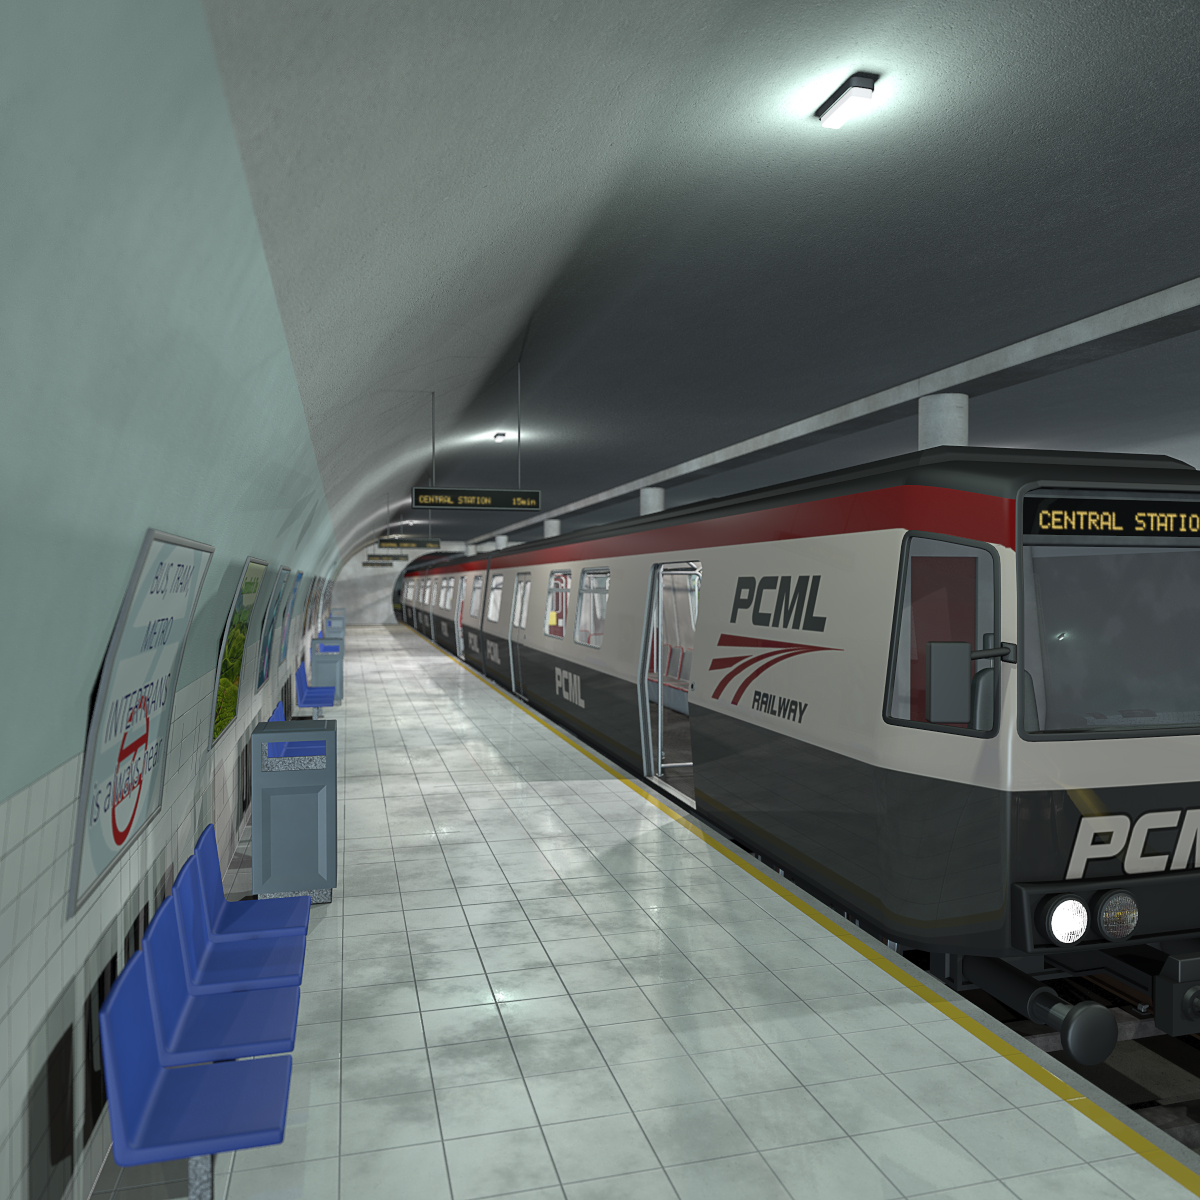 Metro and subway station - Extended License